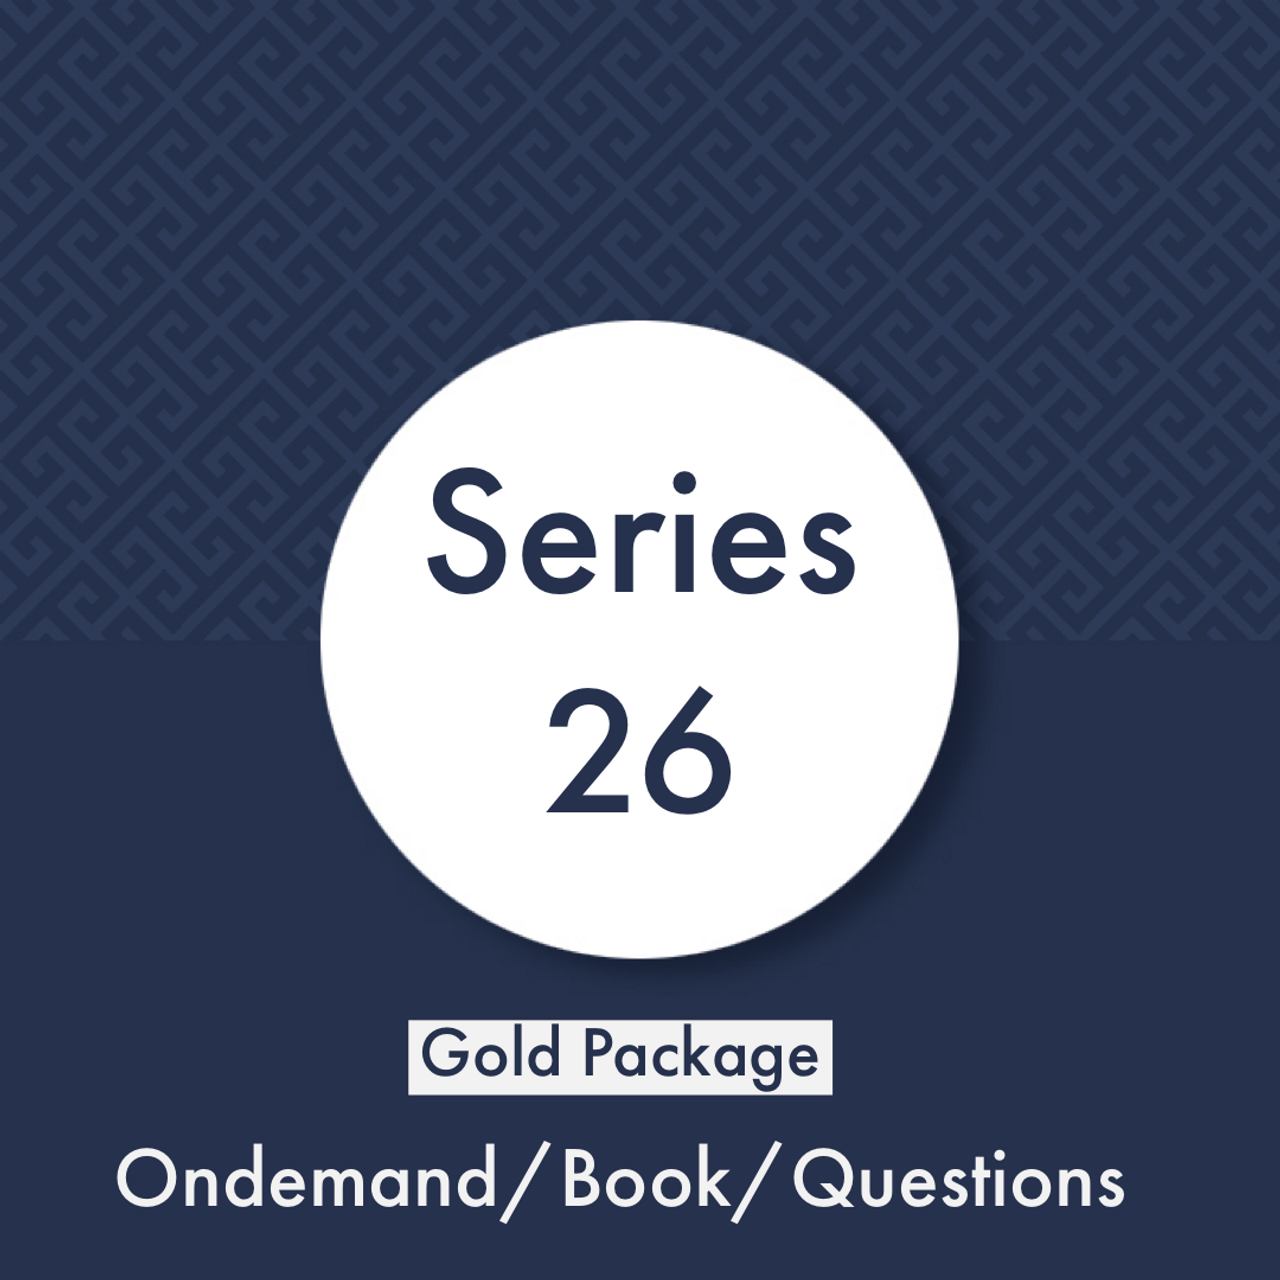 A - Series 26 : Gold Package (Online Class, Book, Question Bank)